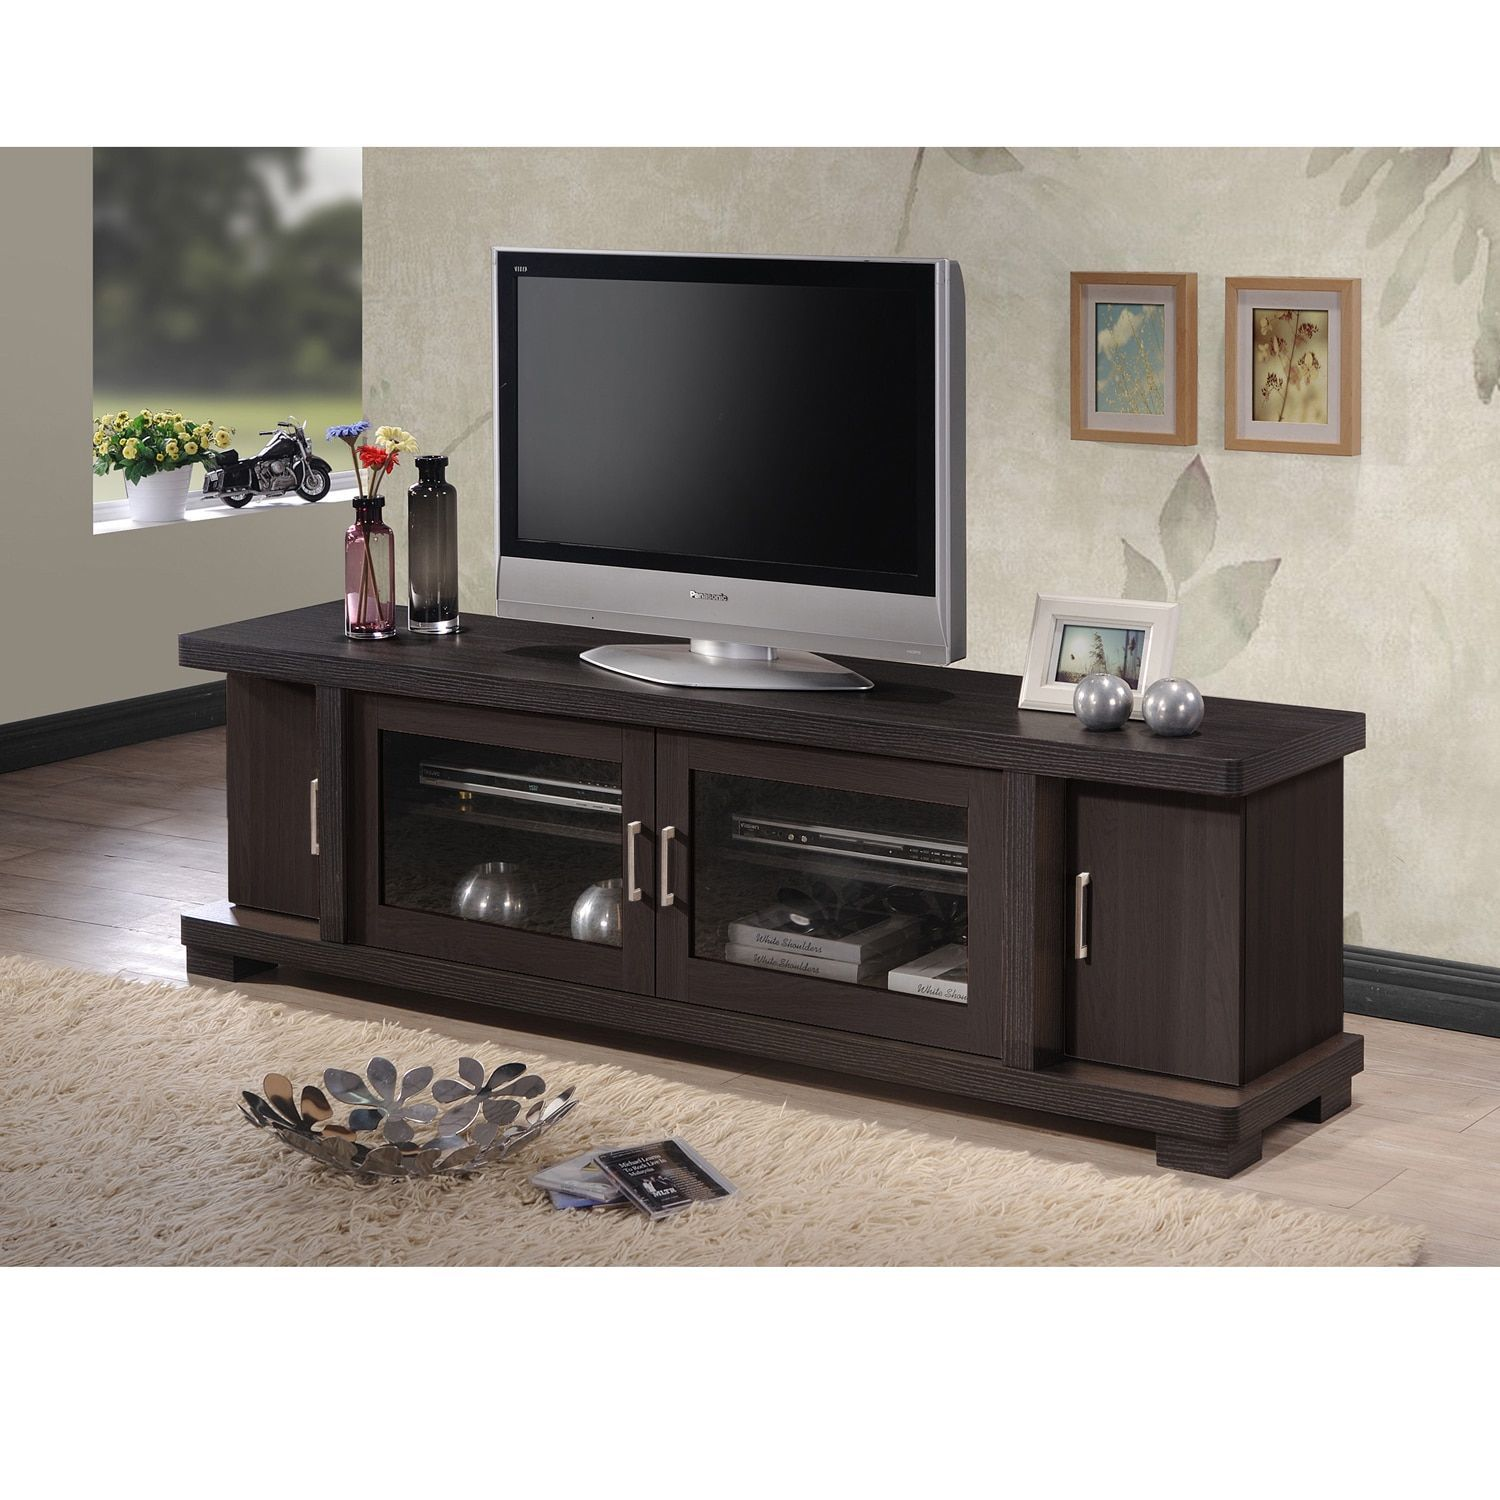 Baxton Studio Vega Contemporary 70 Inch Dark Brown Wood Tv Cabinet With 2 Gl Doors And Stand